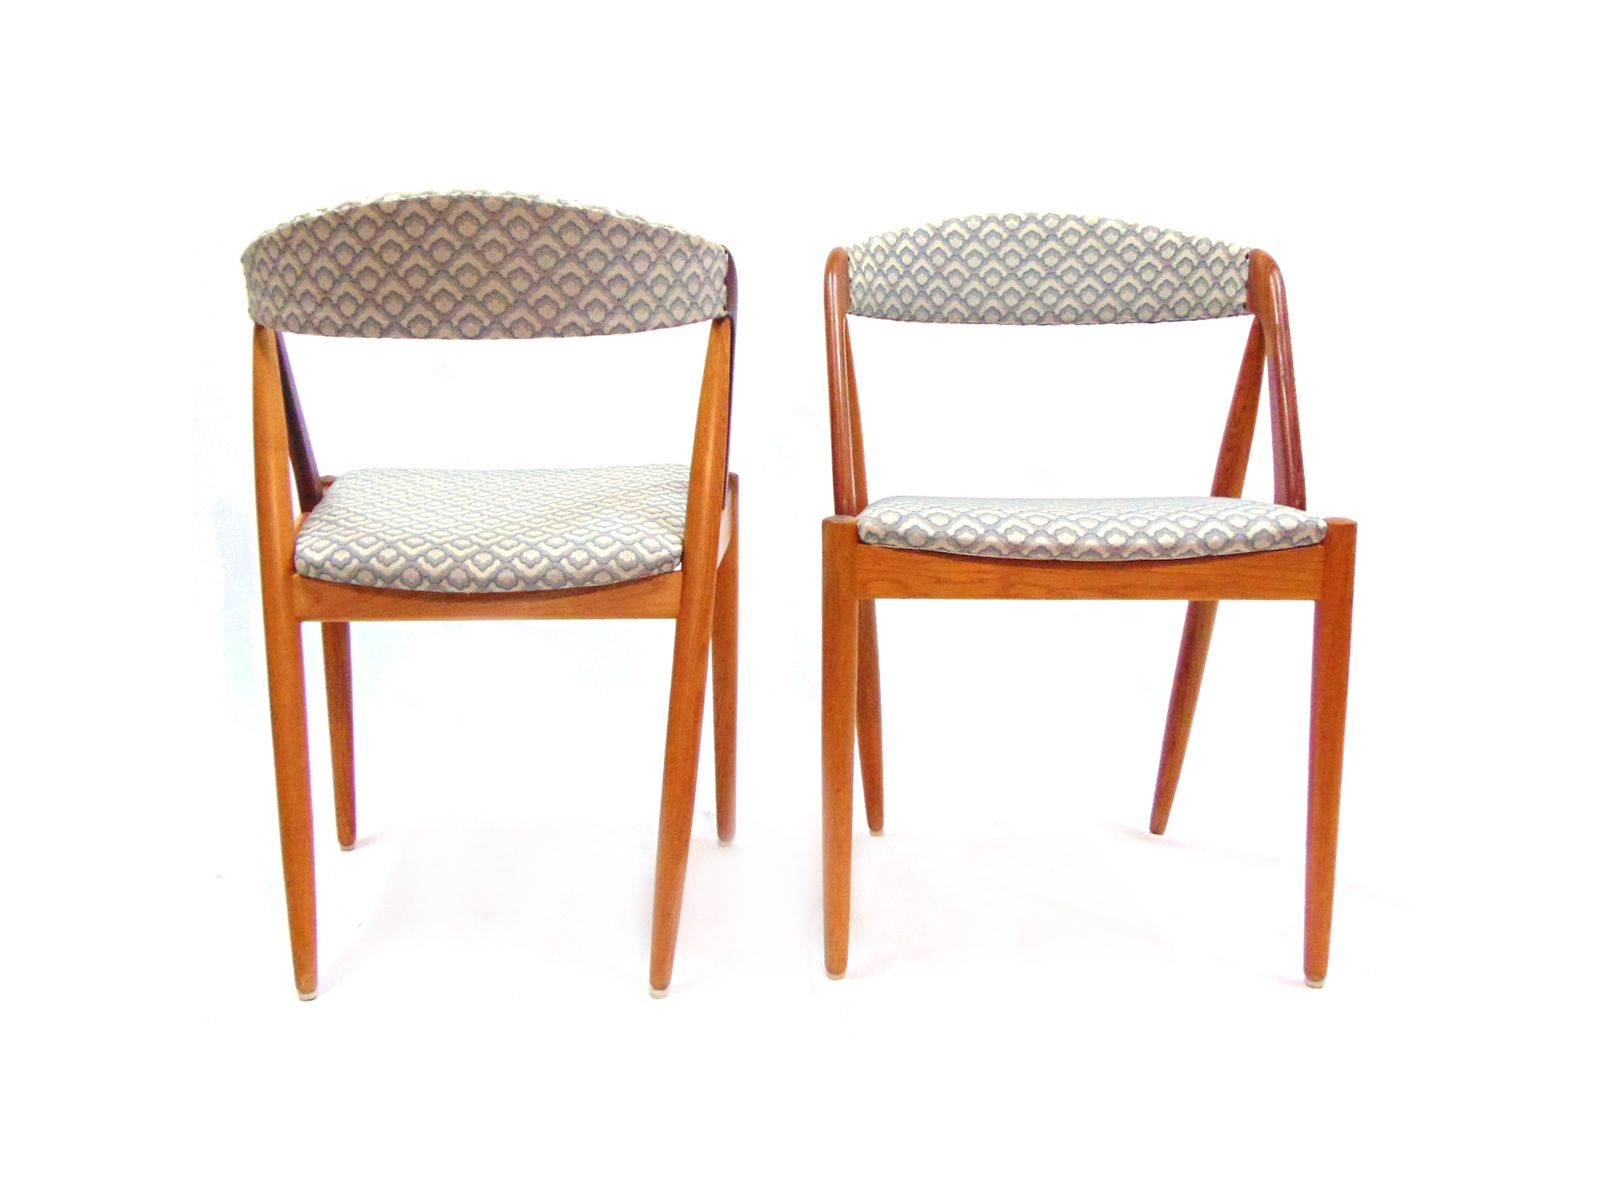 mid-century dining chairs in teak and linen by kai kristiansen for